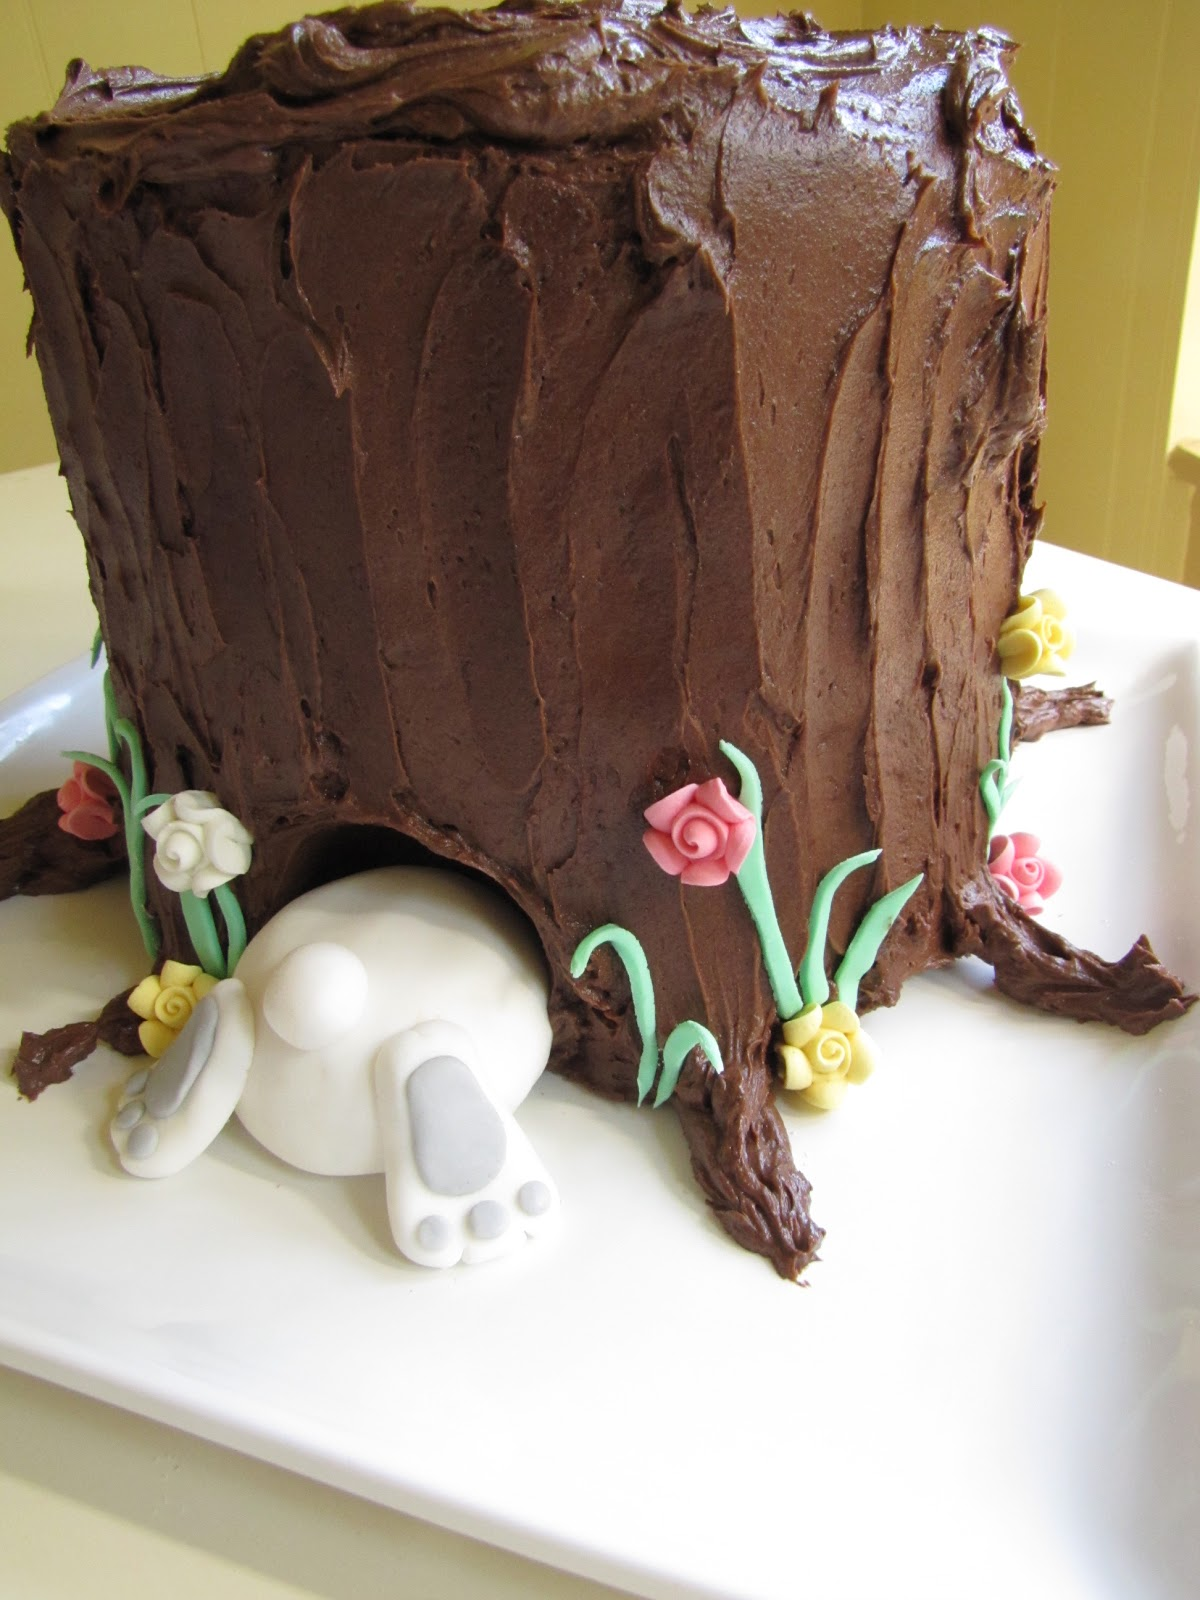 Chocolate Rabbit Cake